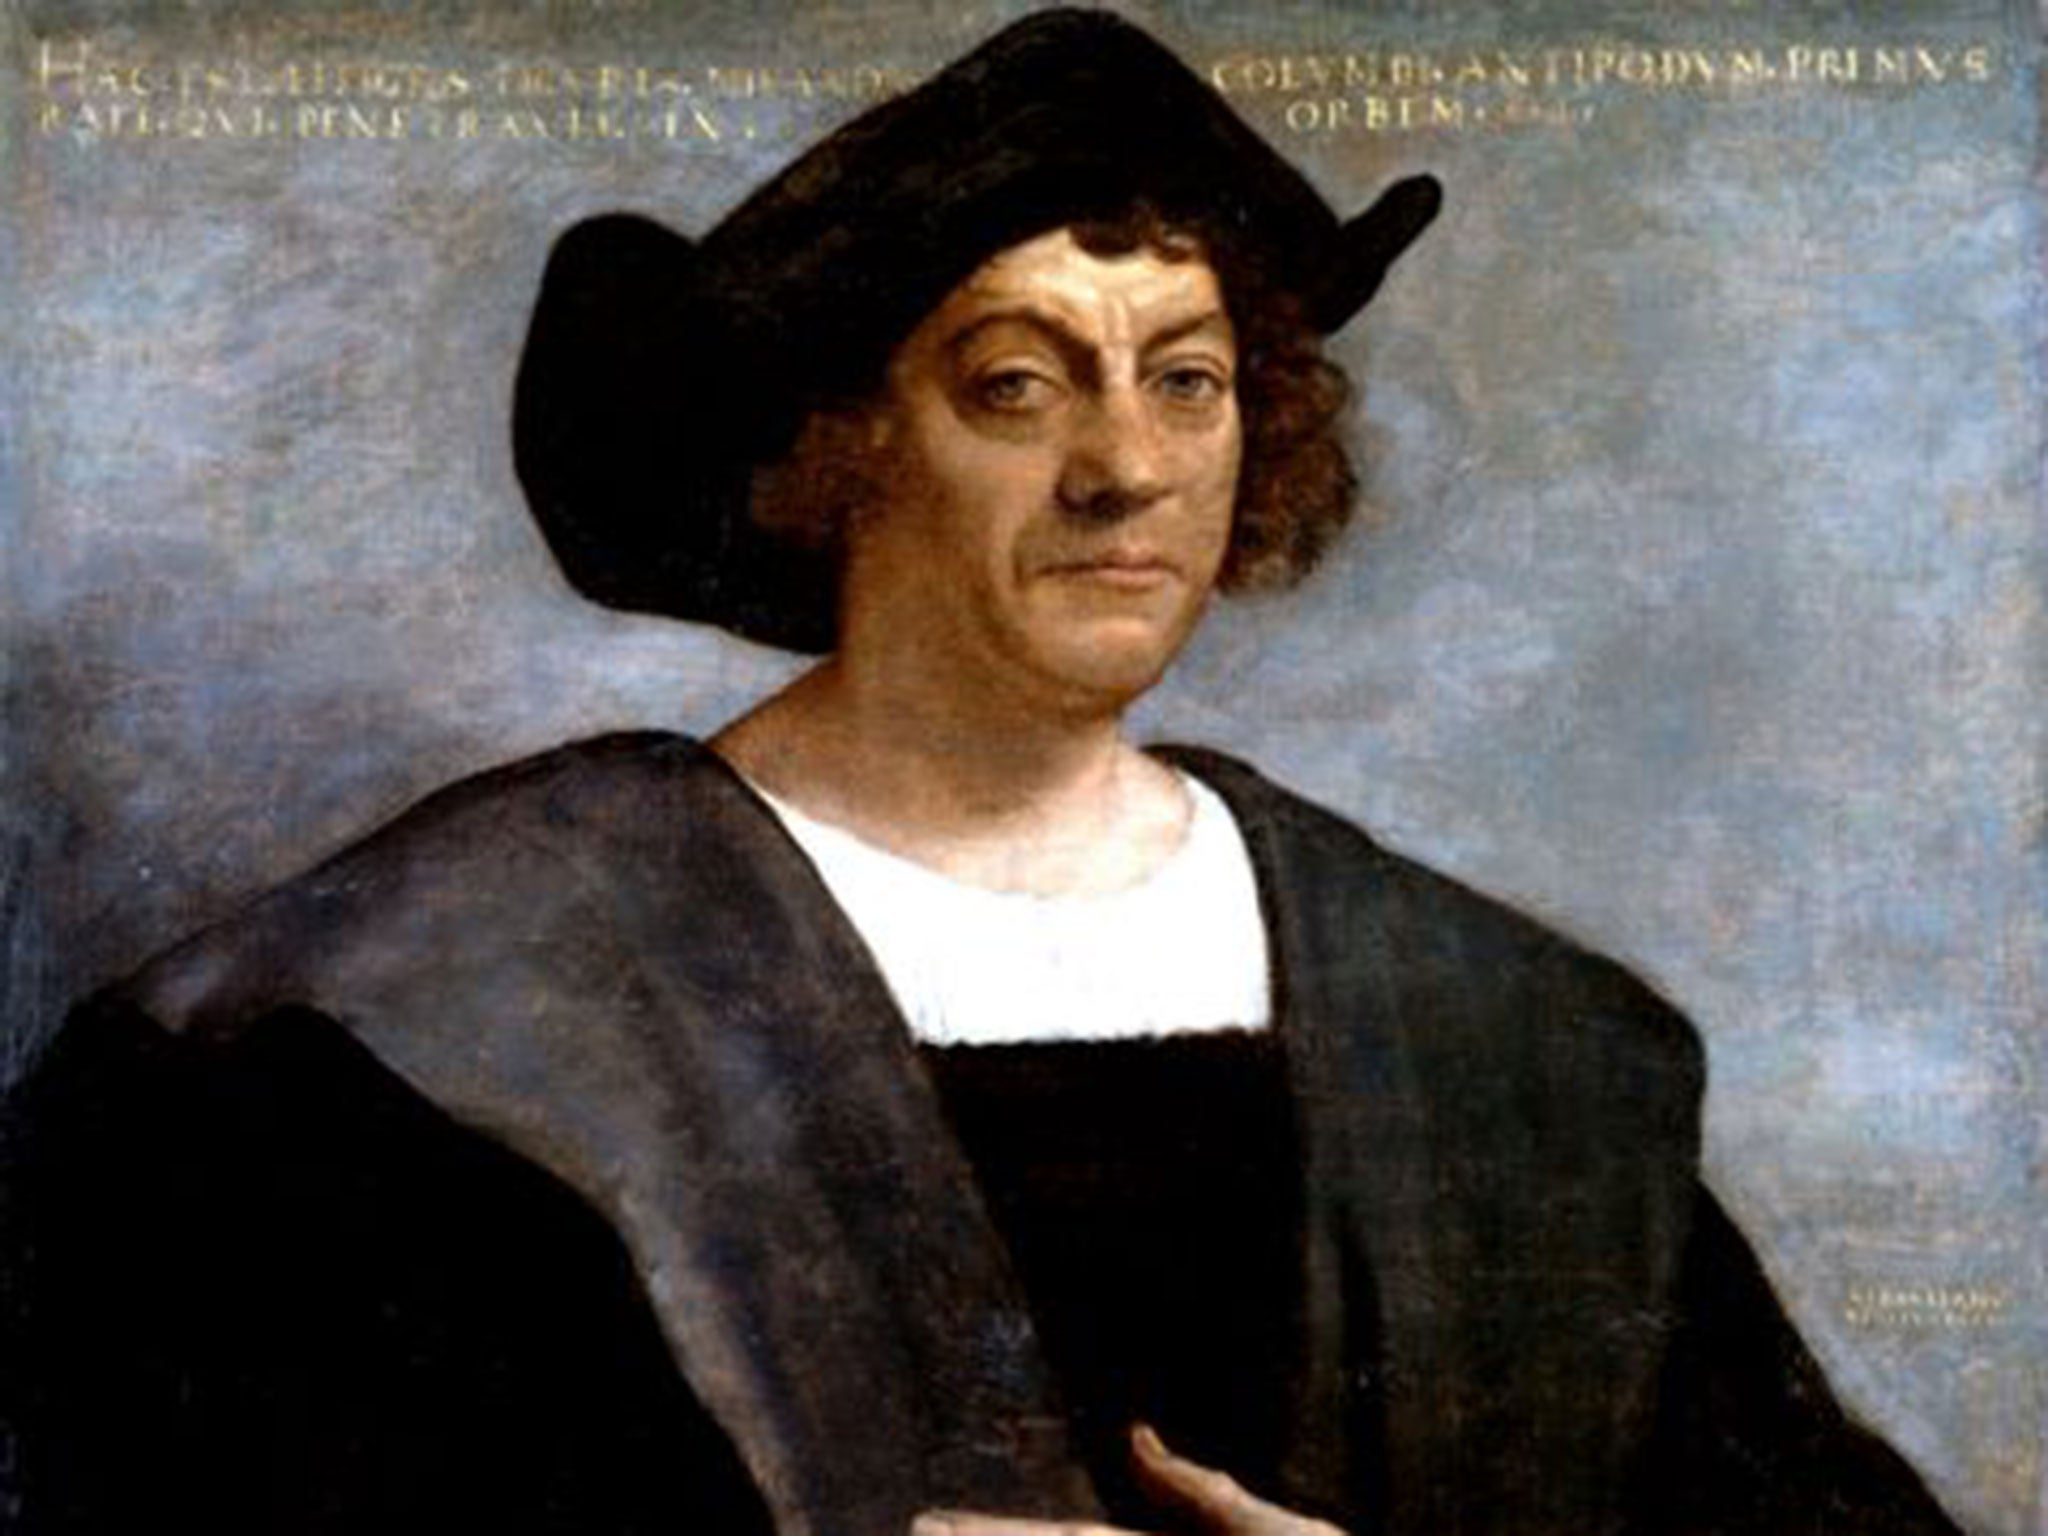 christopher columbus the life and legacy of the famous explorer christopher columbus the life and legacy of the famous explorer the independent